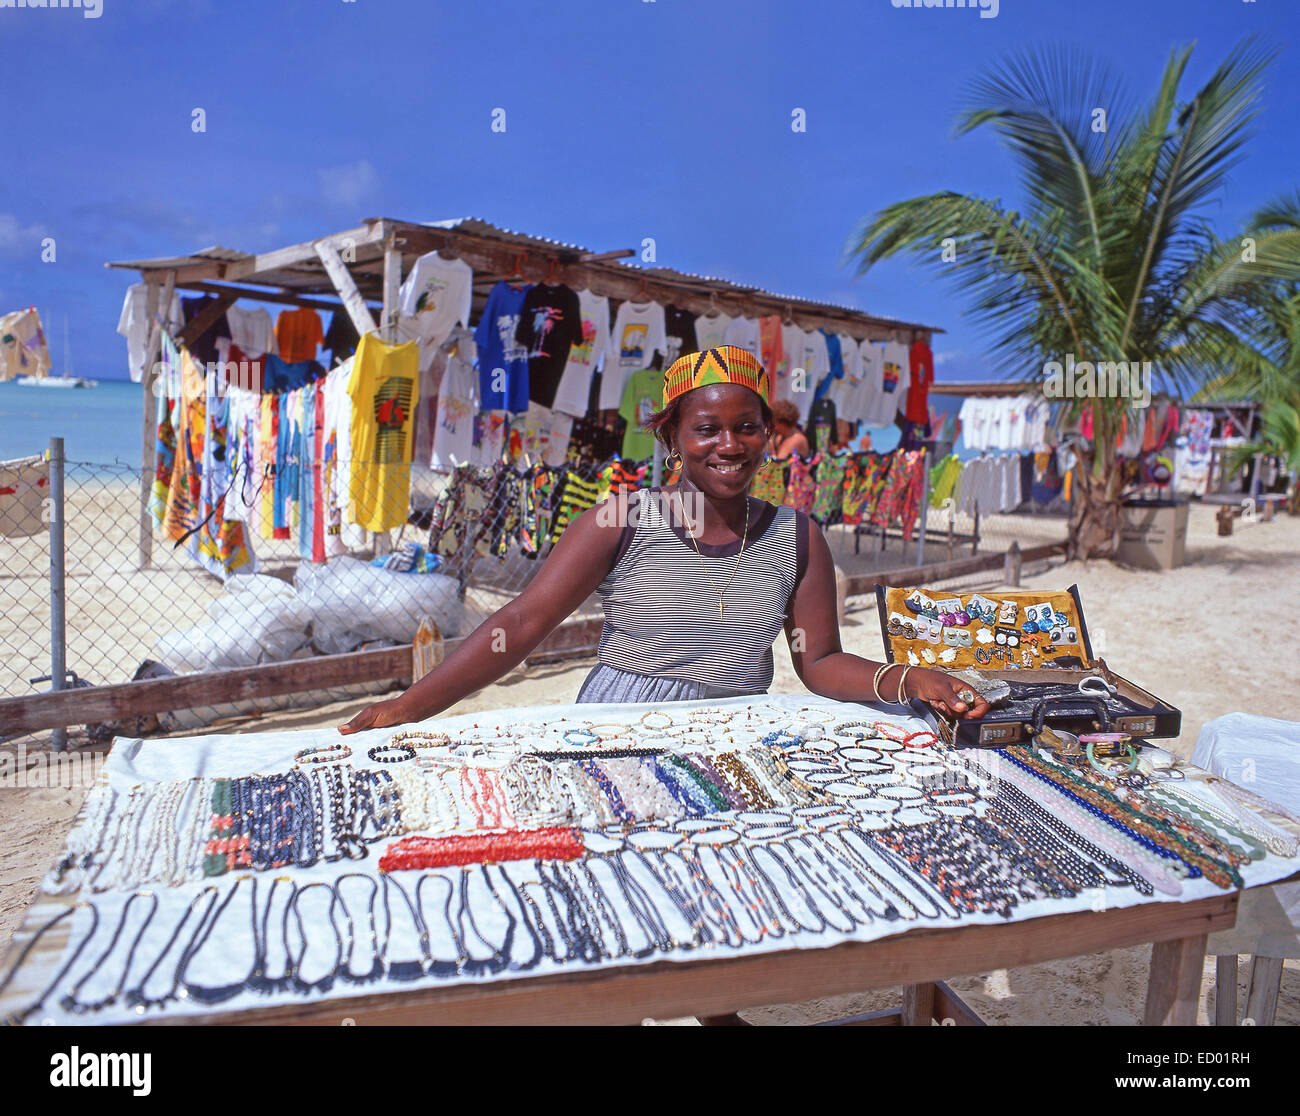 Bijoux de plage multicolores, décrochage Jolly Beach, paroisse de Saint Mary's, Antigua, Antigua et Barbuda, Photo Stock